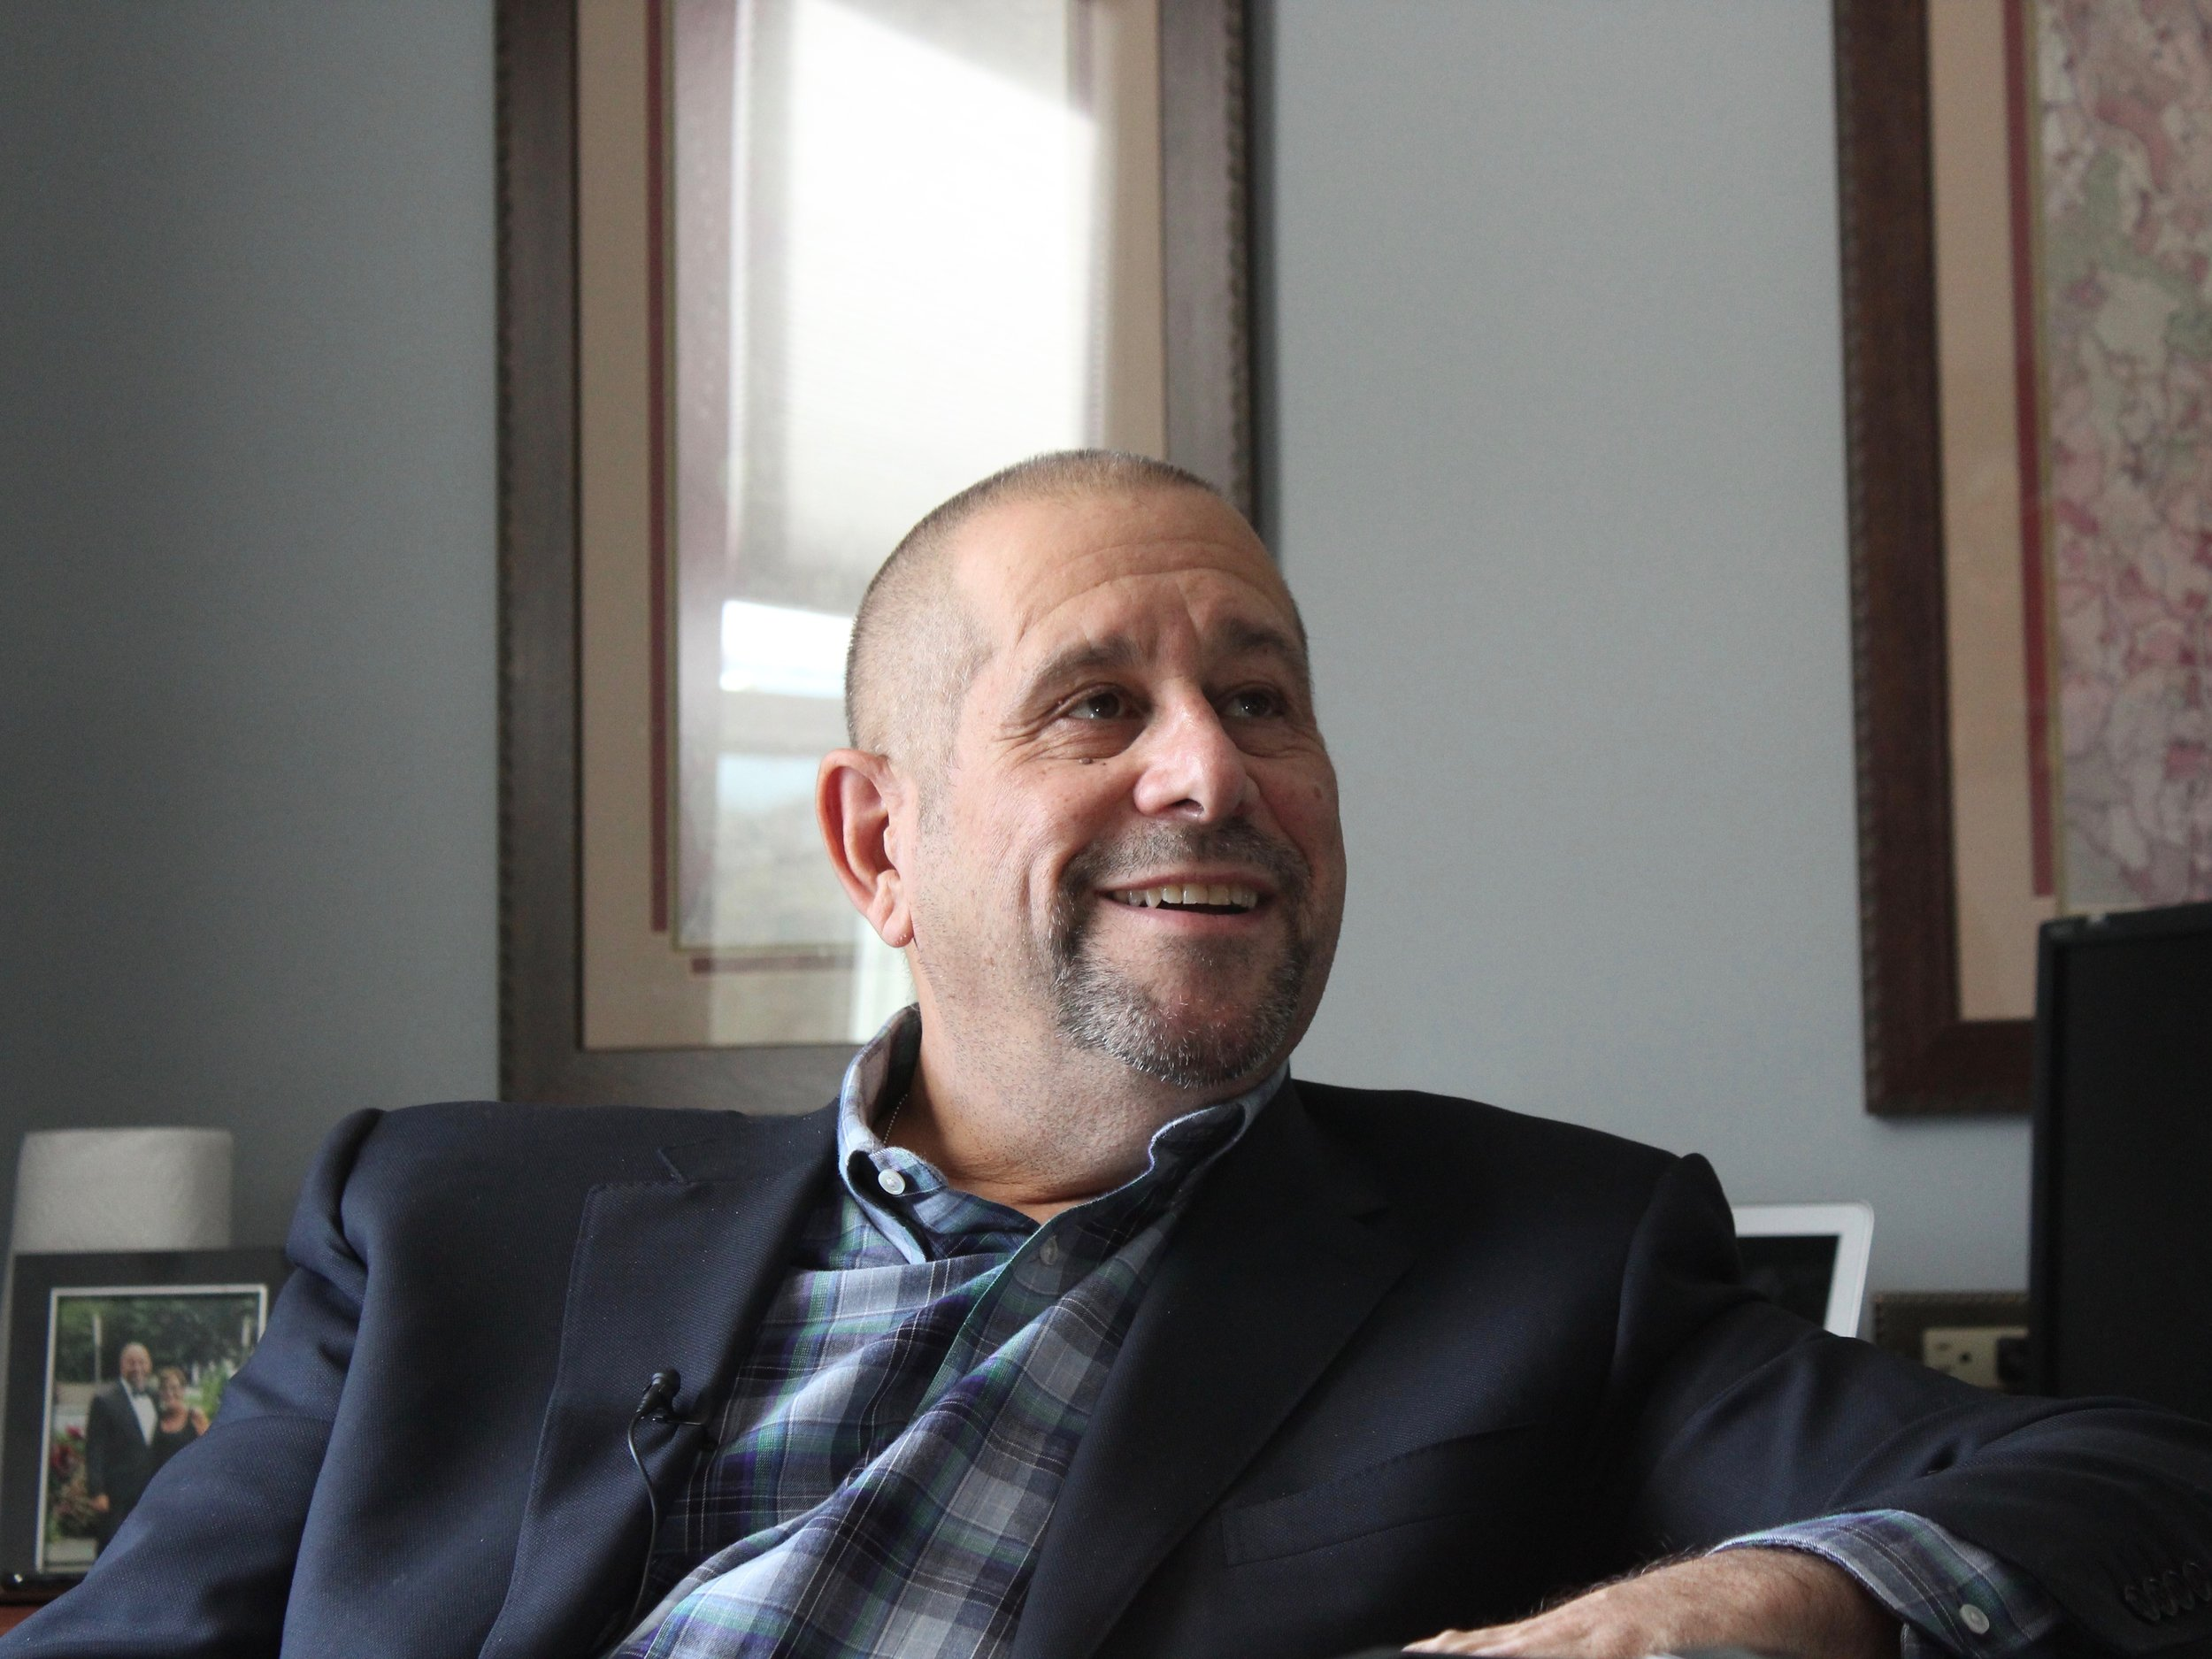 Things are looking up for Grassroots Cannabis CEO Mitch Kahn — and they're not so bad as they are with the state's existing program for medical marijuana. (One Illinois/Ted Cox)